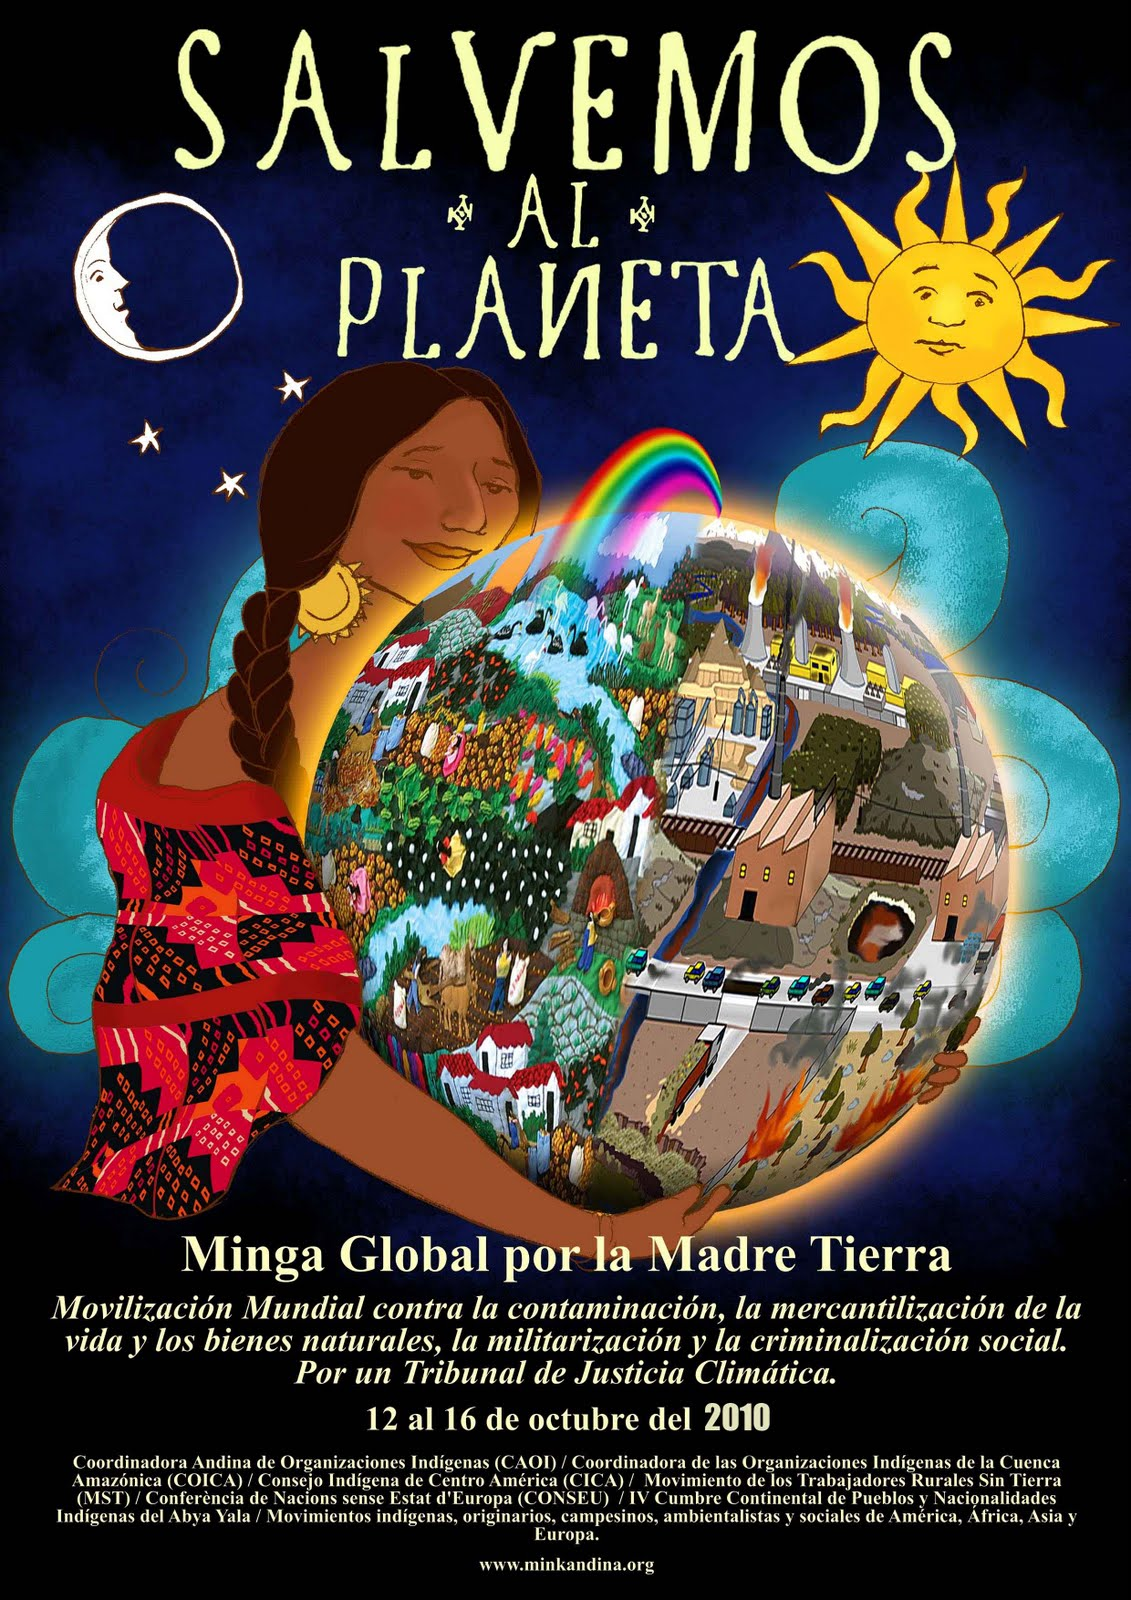 https://i2.wp.com/intercontinentalcry.org/wp-content/uploads/October-12-2010-Global-Minga-in-Defense-of-Mother-Earth-and-Climate-and-Environmental-Justice.jpg